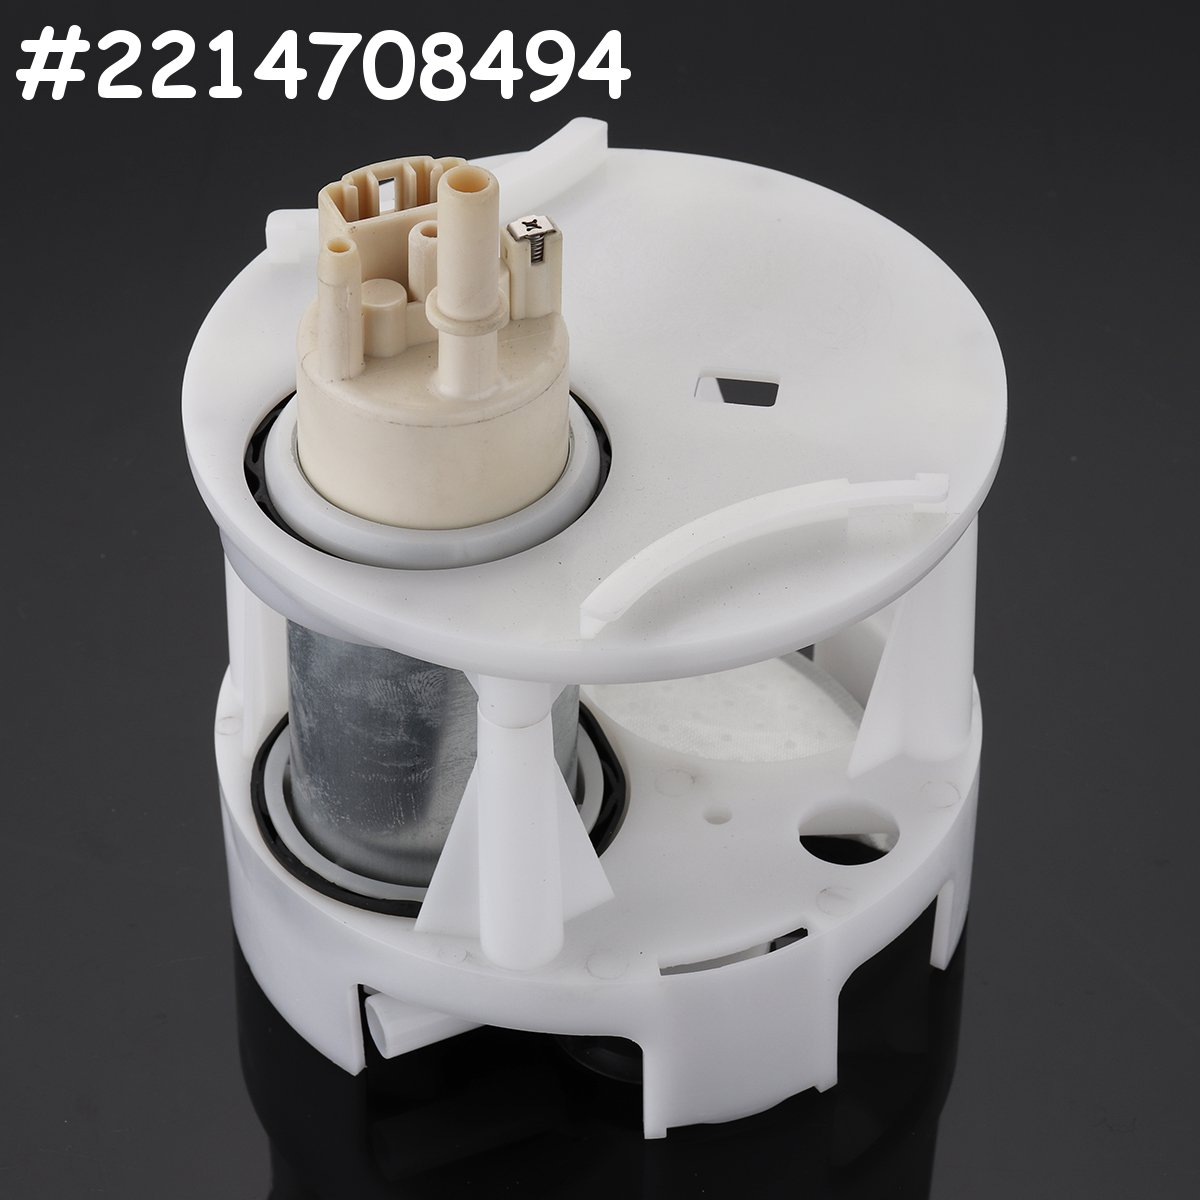 Car Fuel Pump Assembly With Mesh For Mercedes-Benz W221 S350 S400 S450 S500 S550 S600 CL550 2005-2013 For AMG S63 221470849